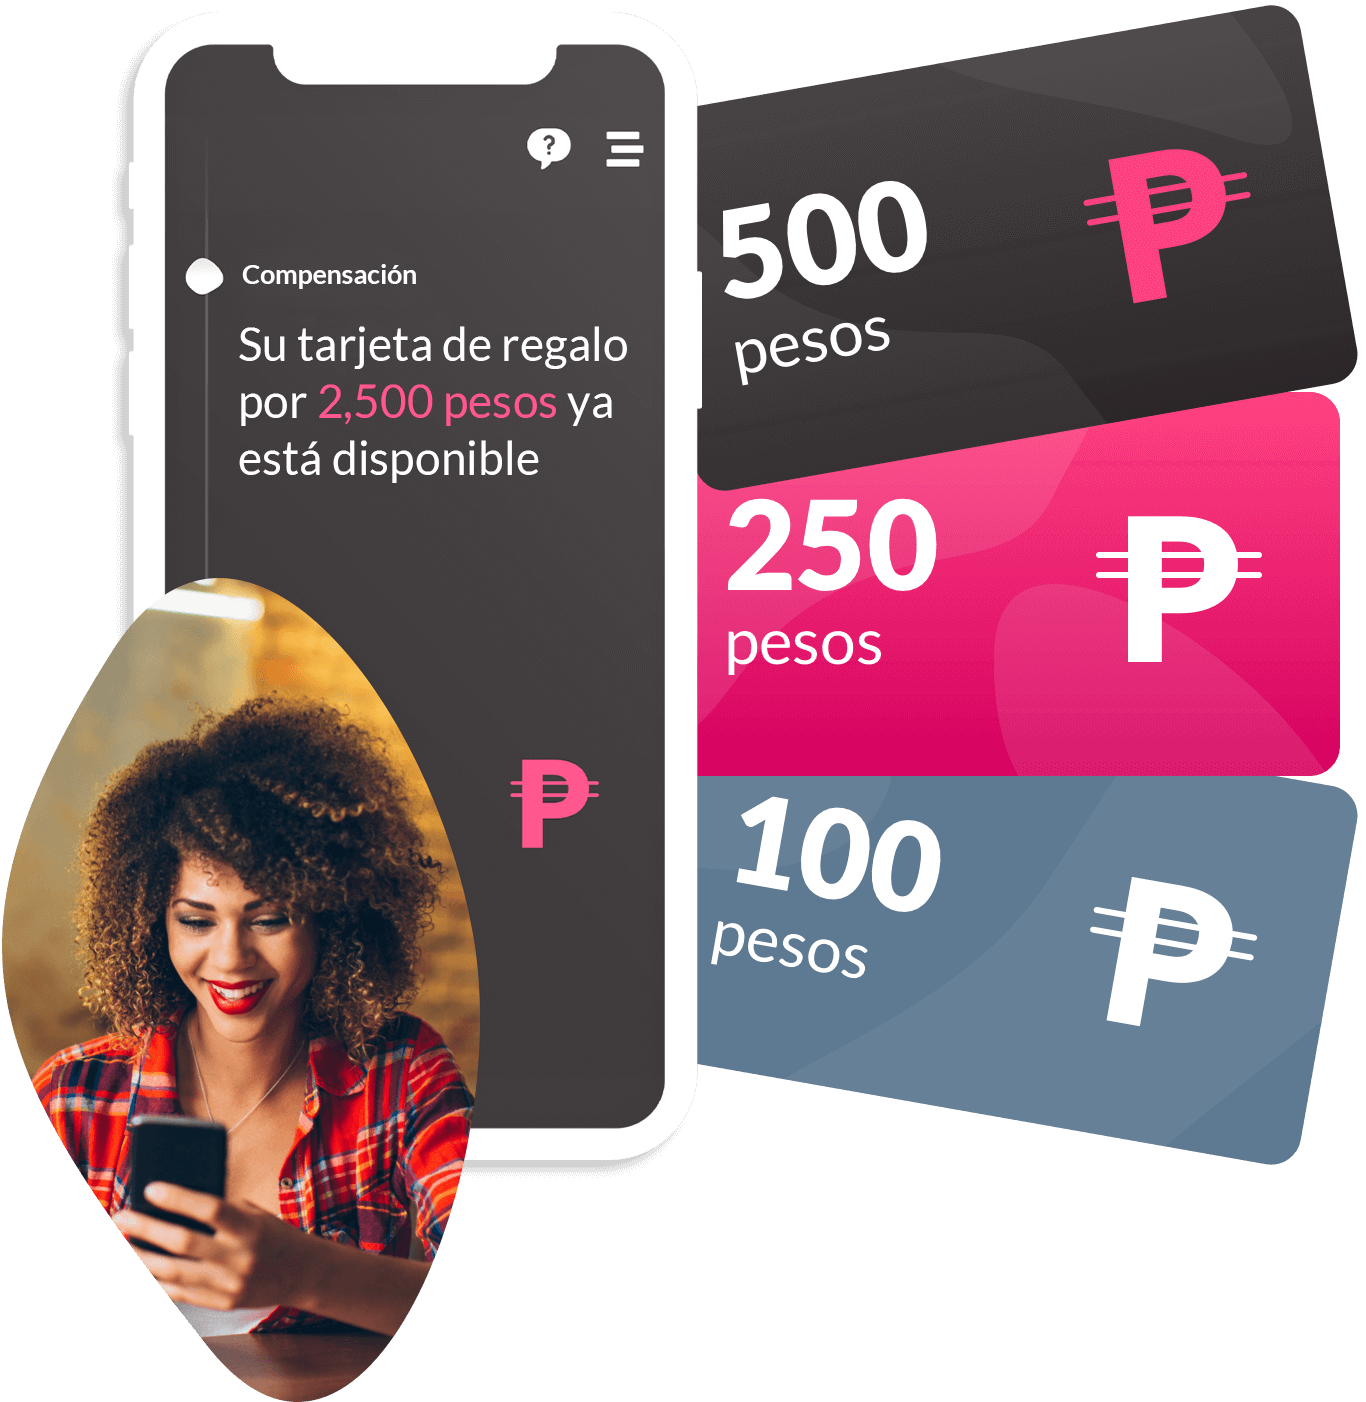 3 images. 1. a phone mockup with app screen in Spanish, announcing your payment from participating is available. 2. A woman smiling looking at her phone. 3. Three Peso gift cards.